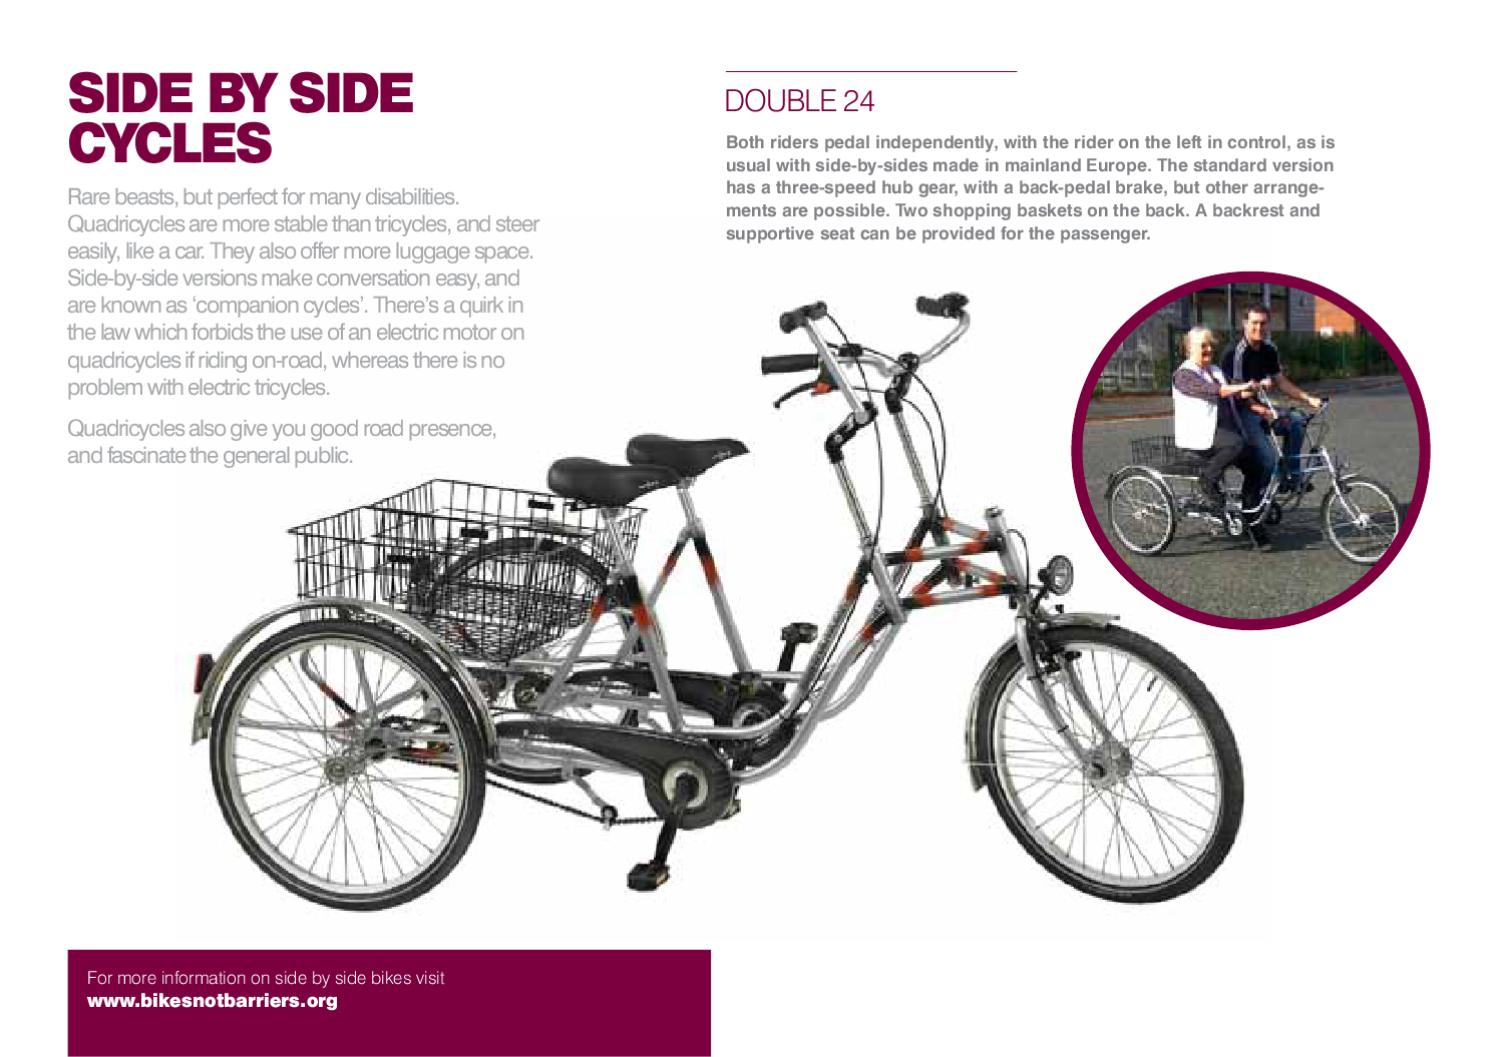 BIkes Not Barriers: The Guide to Disability Cycling by Cyclo Rama